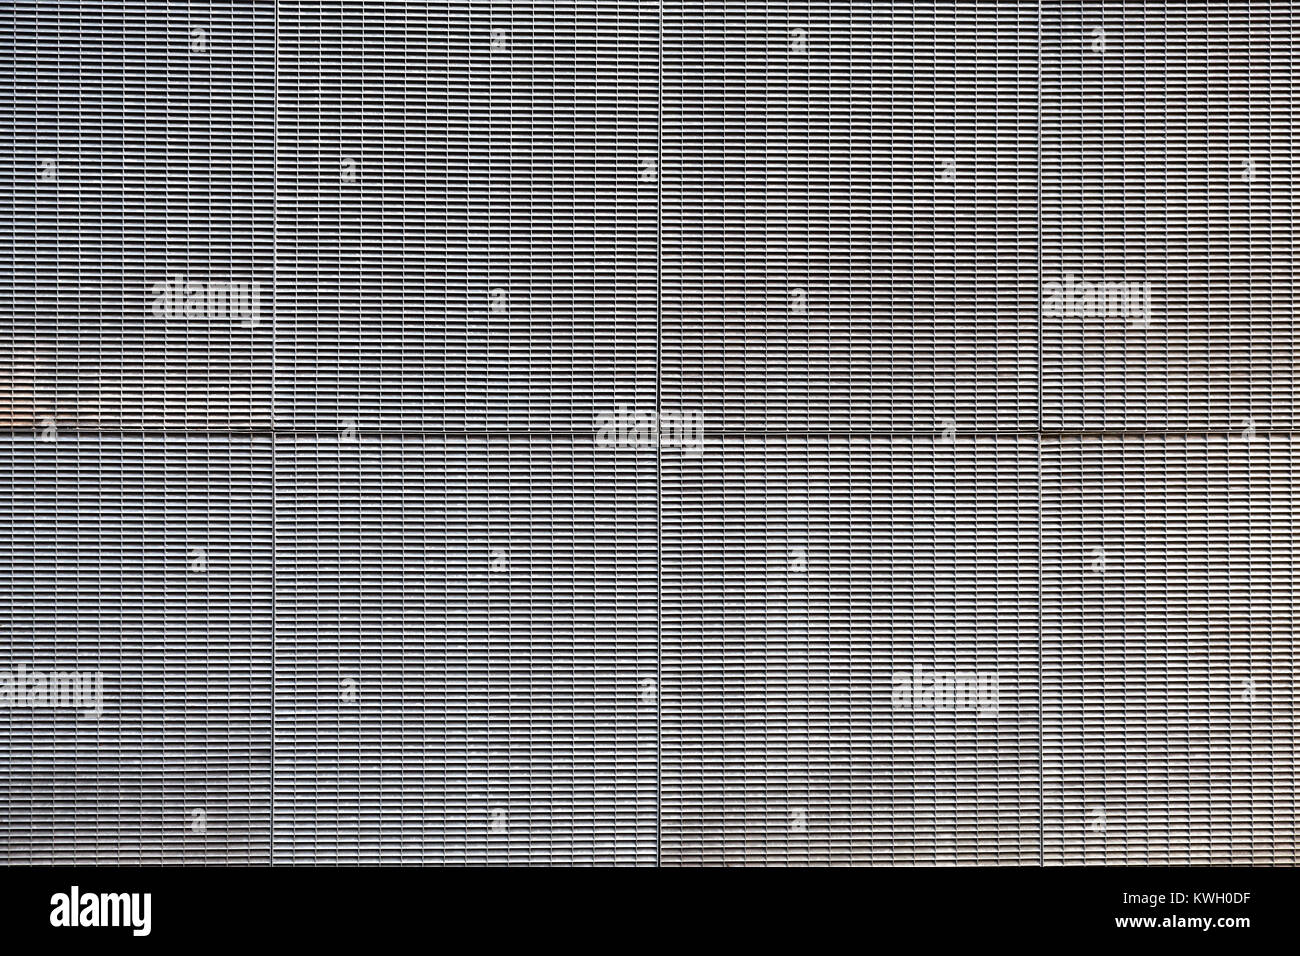 Building facade covered in galvanised metal grills - Stock Image